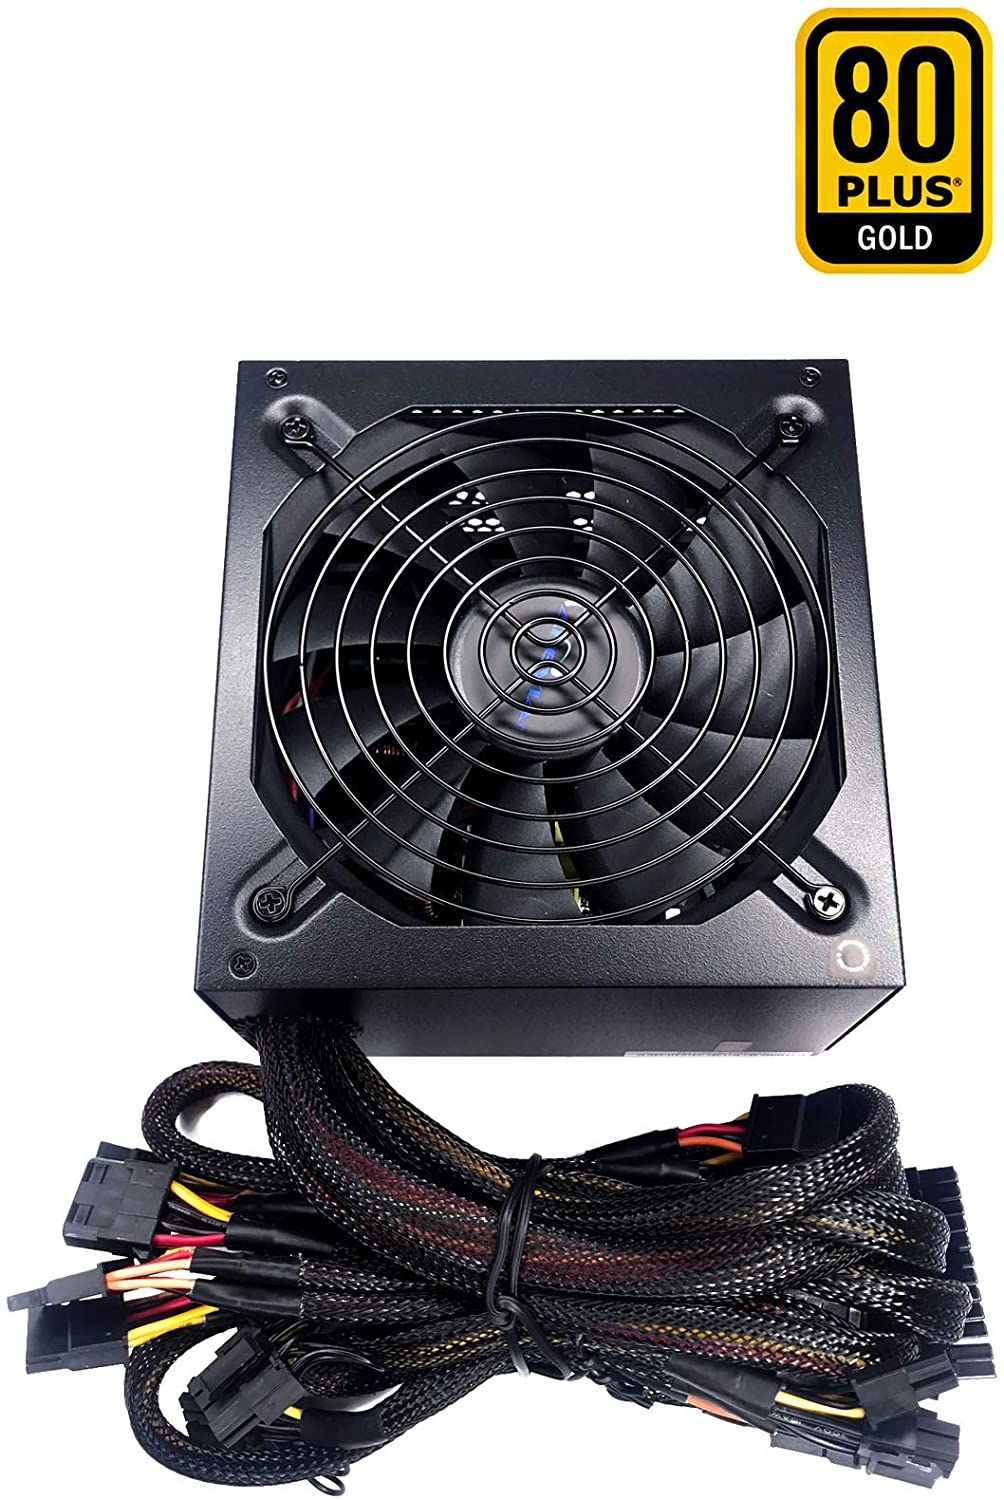 Apevia ATX-PR800W Prestige 800W 80+ Gold Certified, RoHS Compliance, Active PFC ATX Gaming Power Supply 71Ll3sJld9L